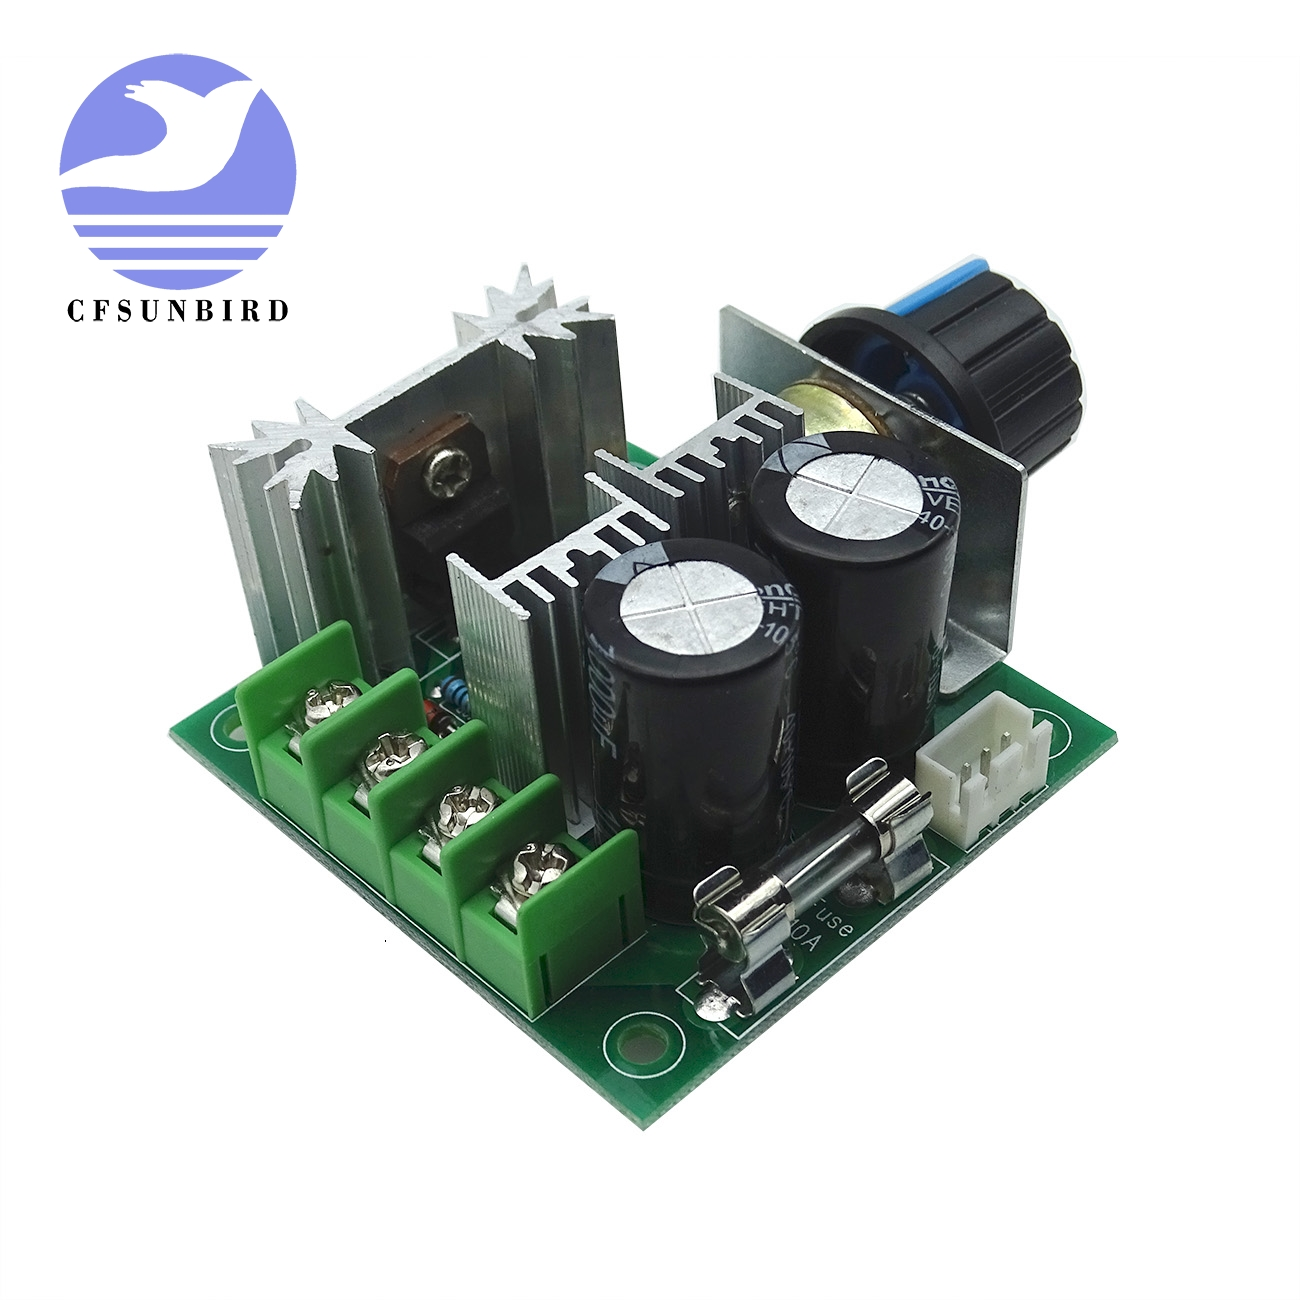 Electronic Components & Supplies Initiative 10pcs Cfsunbird Width Modulation 12v-40v 10a Pulse Pwm Dc Motor Speed Control Switch New We Take Customers As Our Gods Active Components